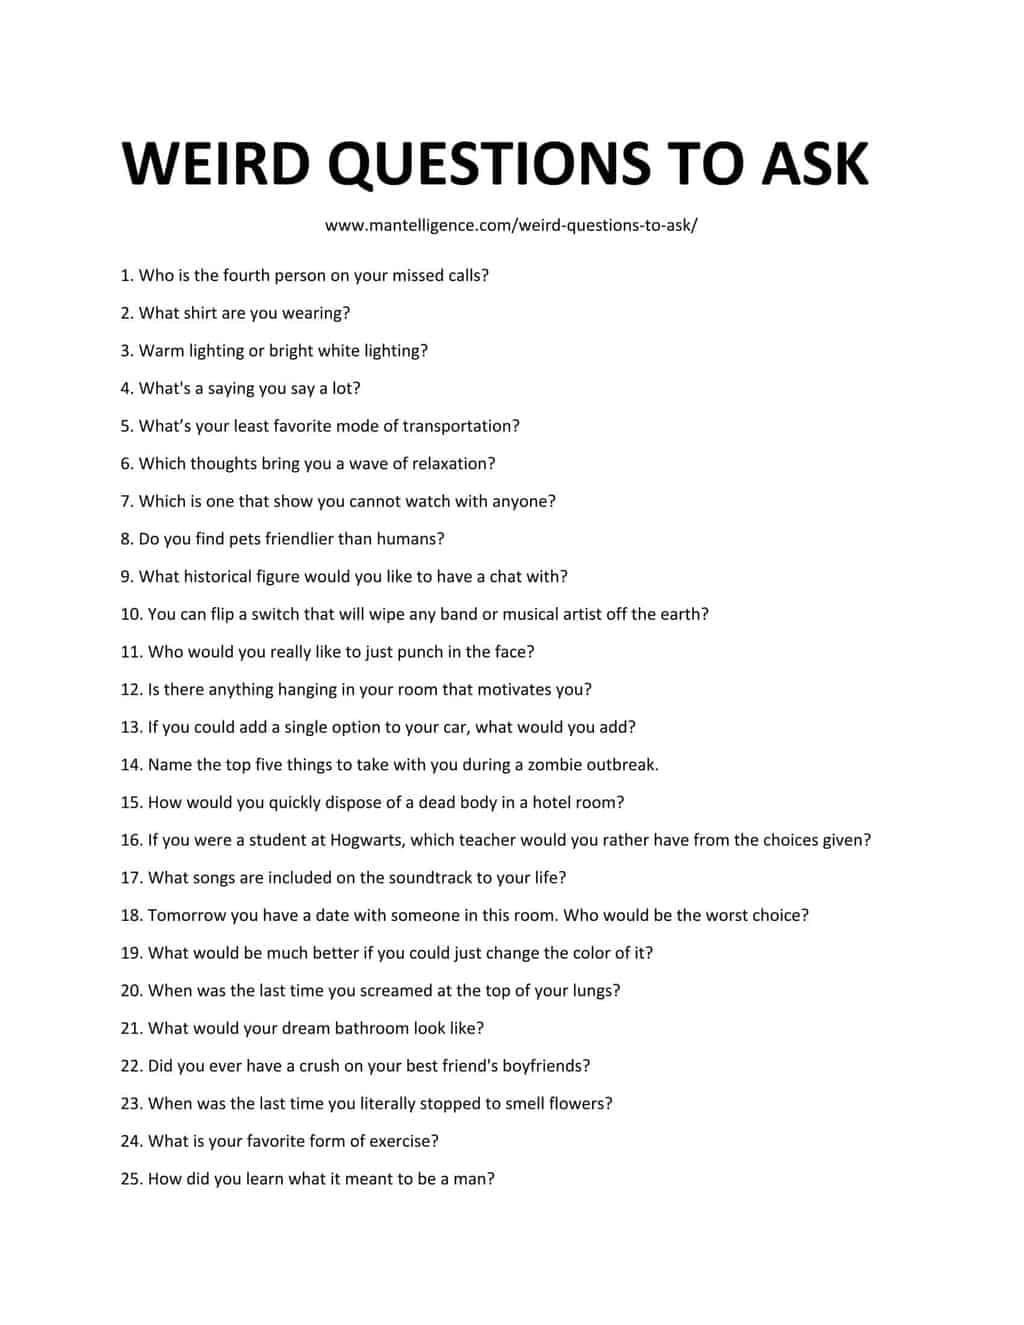 List of Weird Questions To Ask